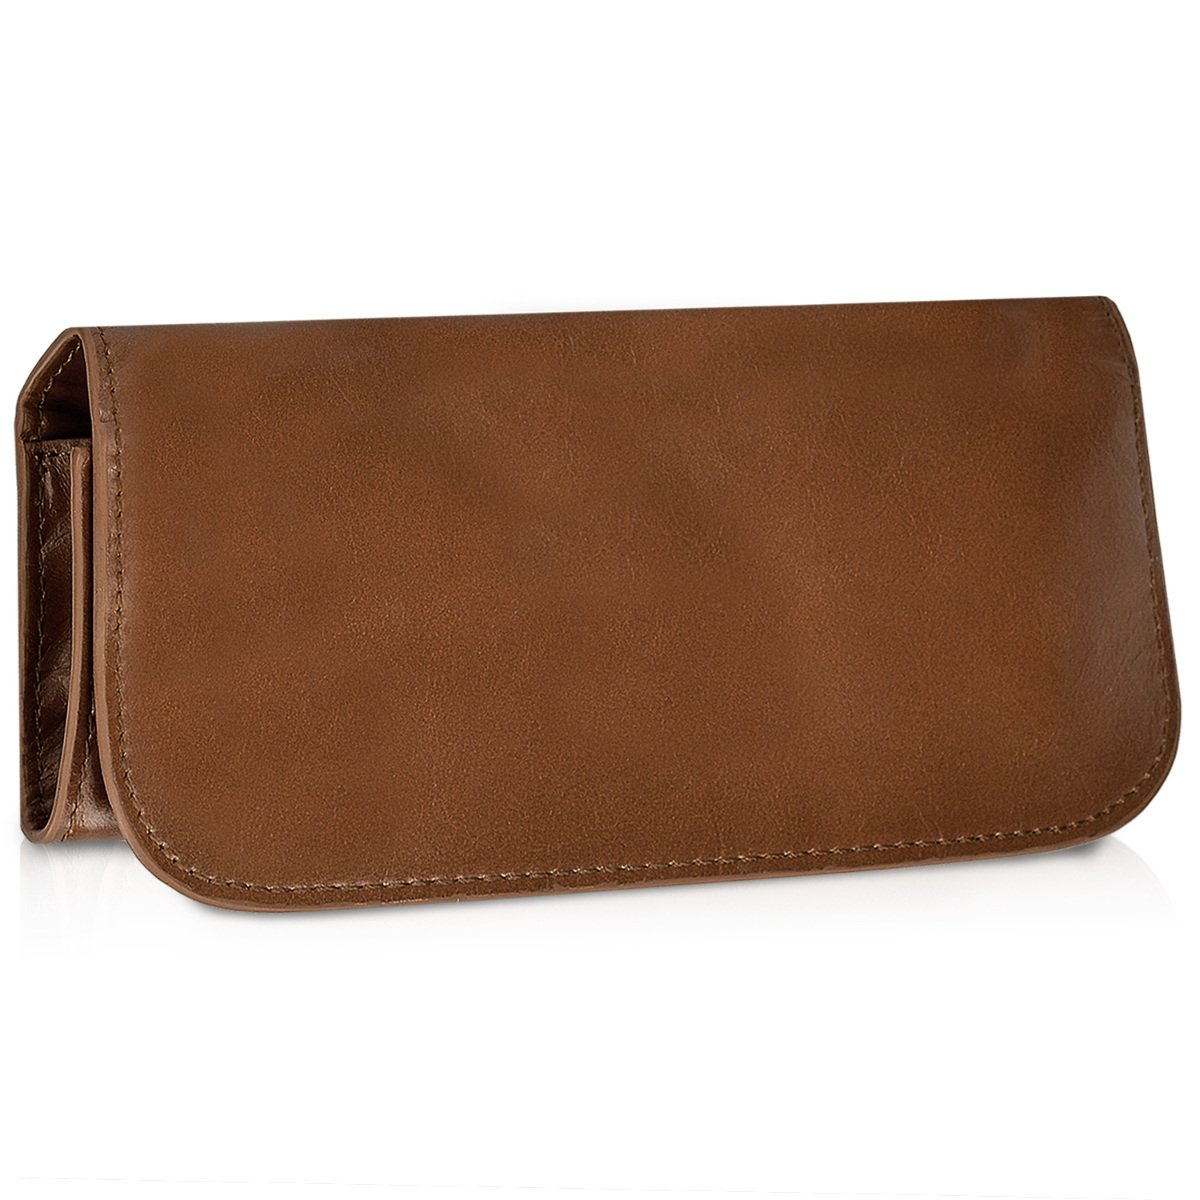 kalibri Natural Leather Tobacco Pouch - Small Soft Leather Case for Rolling Tobacco and Pipe Tobacco